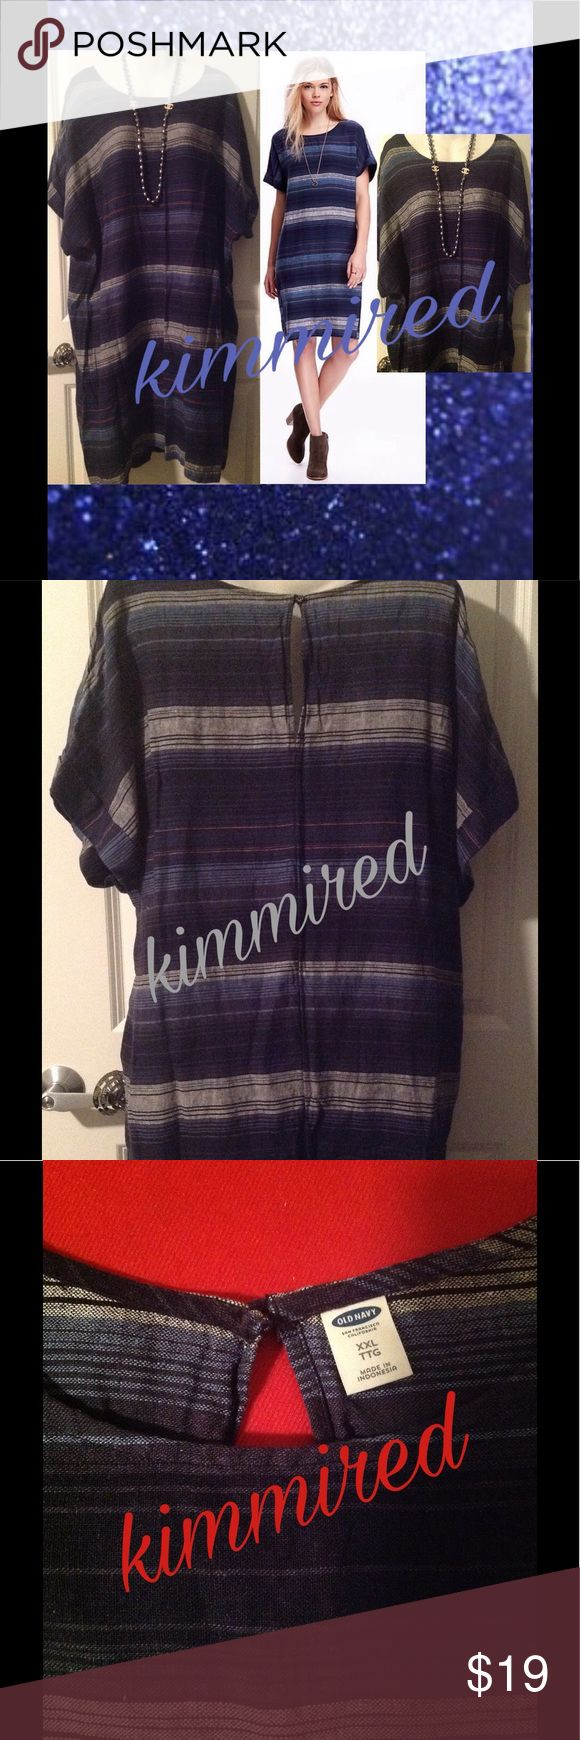 🆕 Old Navy Blue Striped Linen Dress ~ XXL ~ NWOT 🆕 Old Navy Blue Striped Linen Dress ~ XXL ~ NWOT ✔️ 🛰 new without tags 🛰 shirt sleeve 🛰 woven print 🆒 stripe linen dress 🛰 keyhole back  Necklace❌NOT❌ included‼️  🚫🚭 No smoking 🚫🚭 🚫🐶🐱 No pets 🚫🐶🐱 Old Navy Dresses Mini